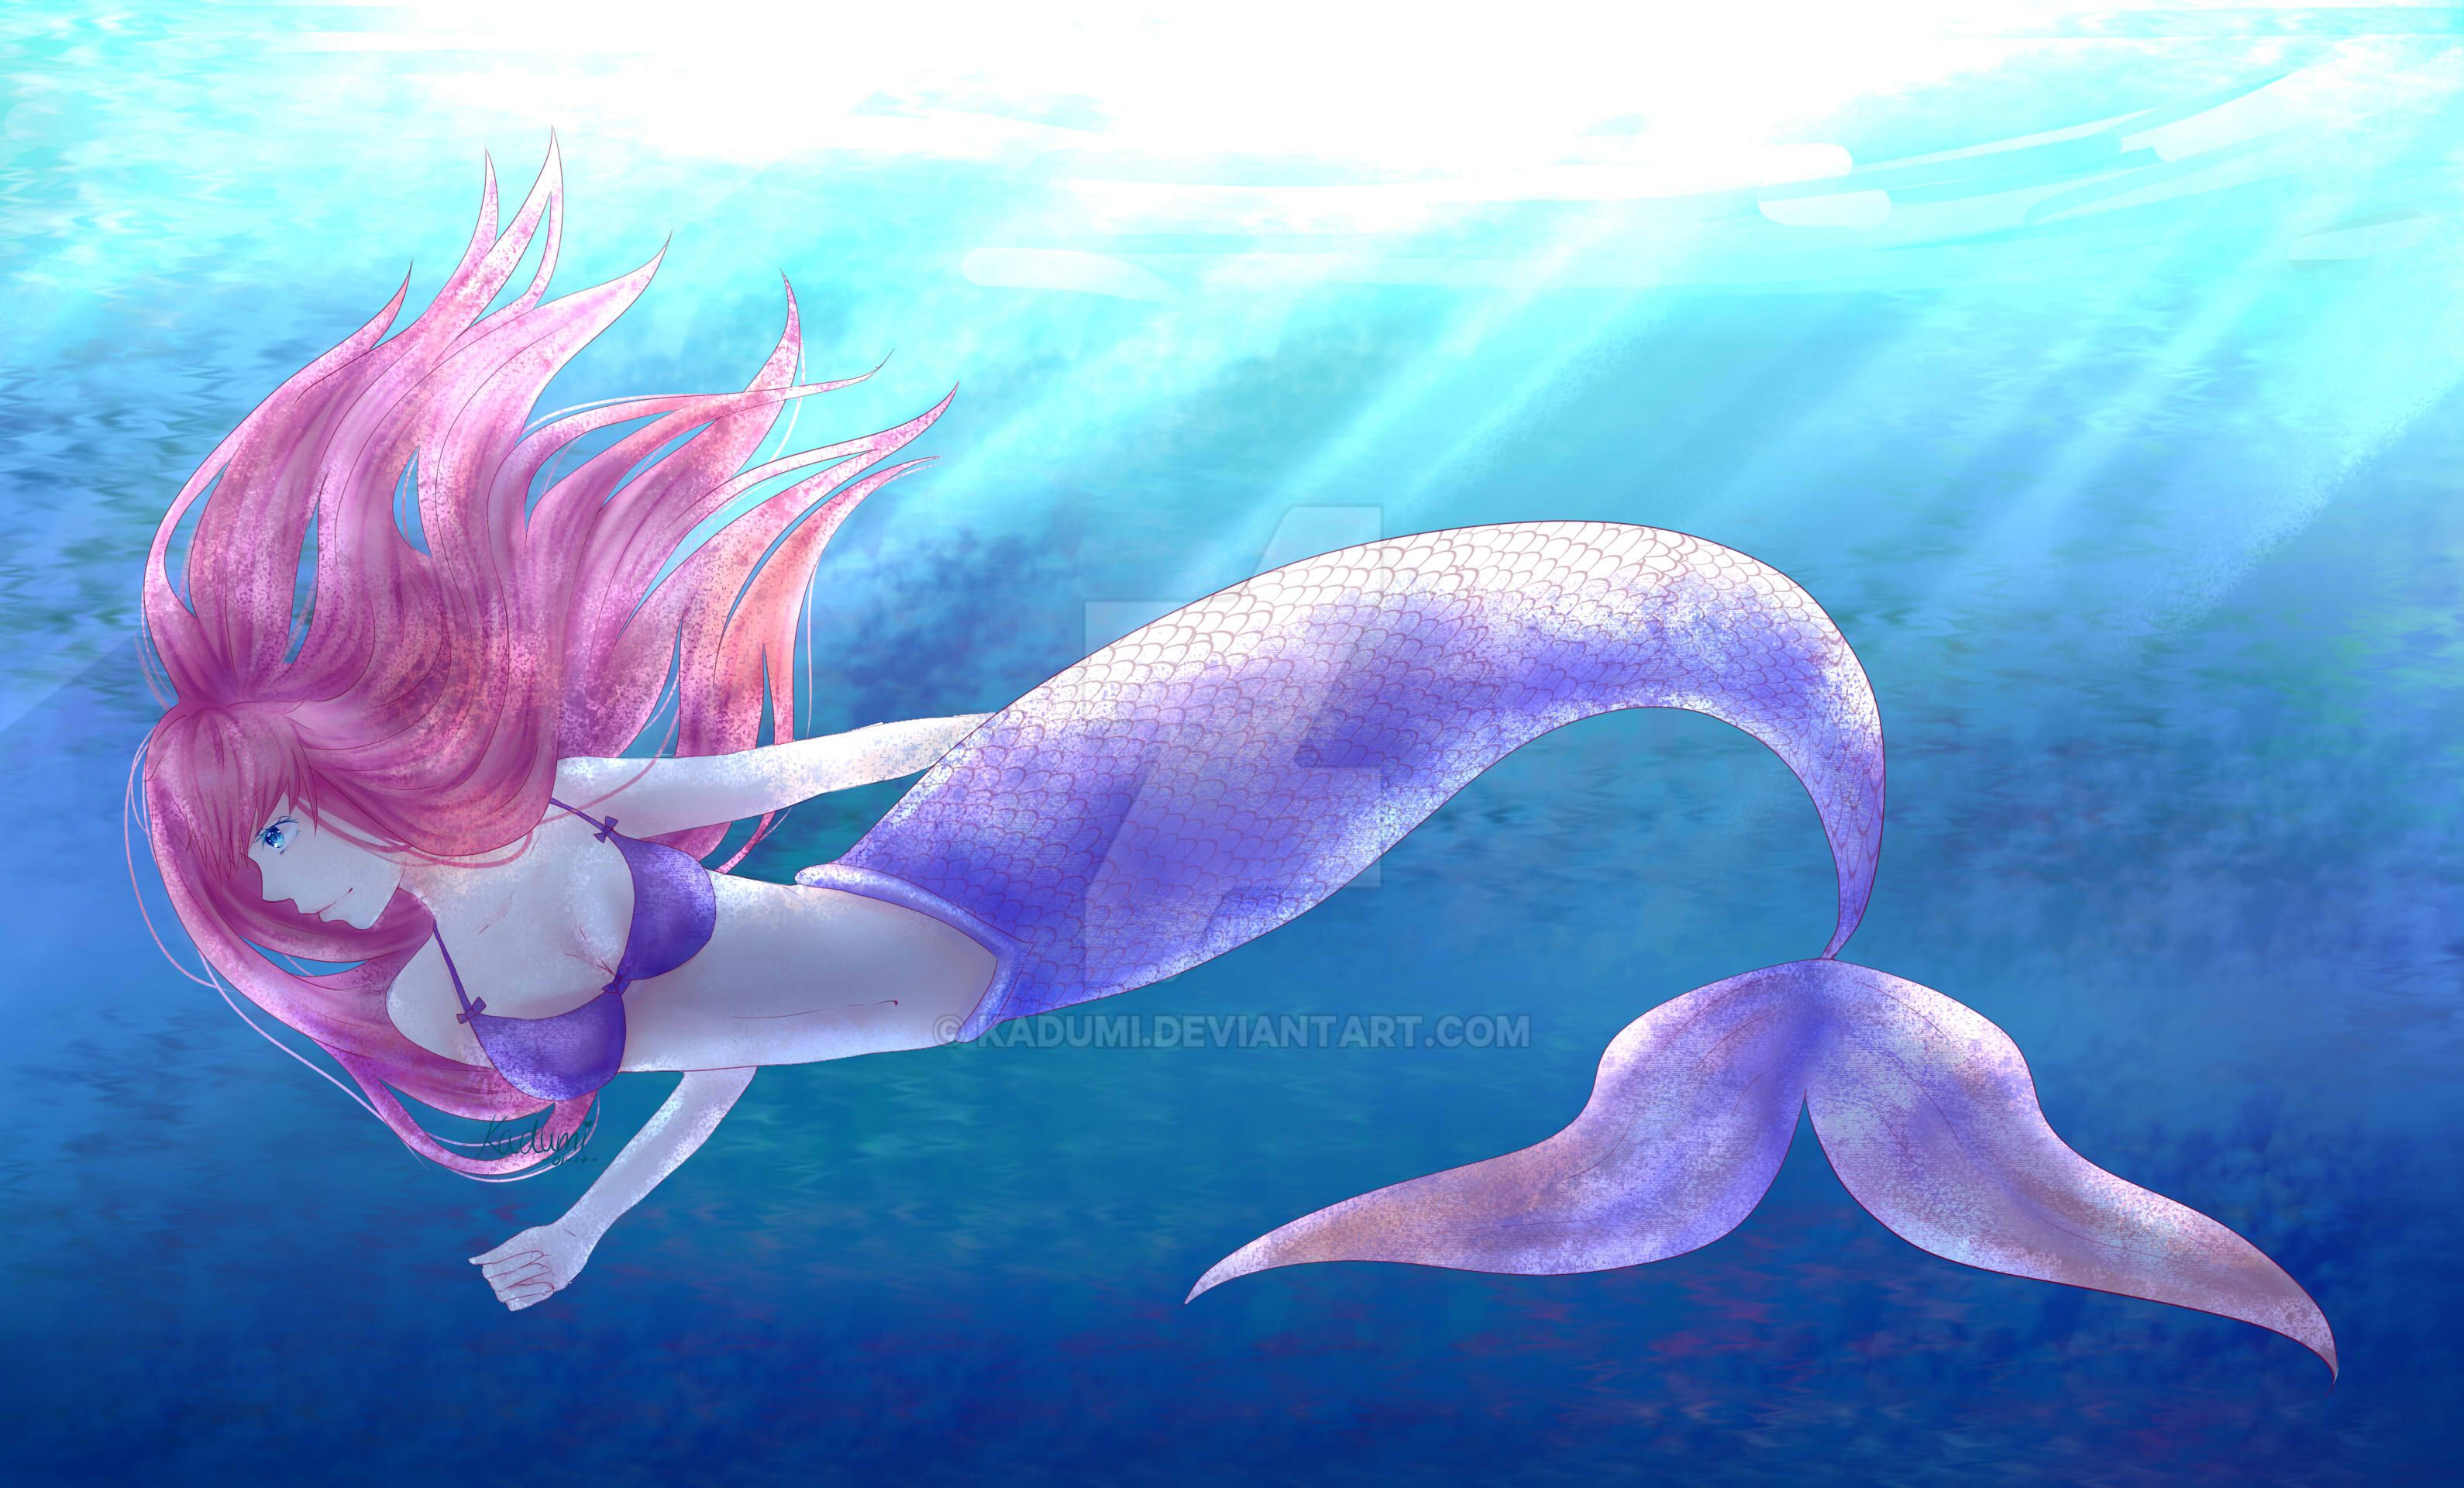 Mermaid by Kadumi